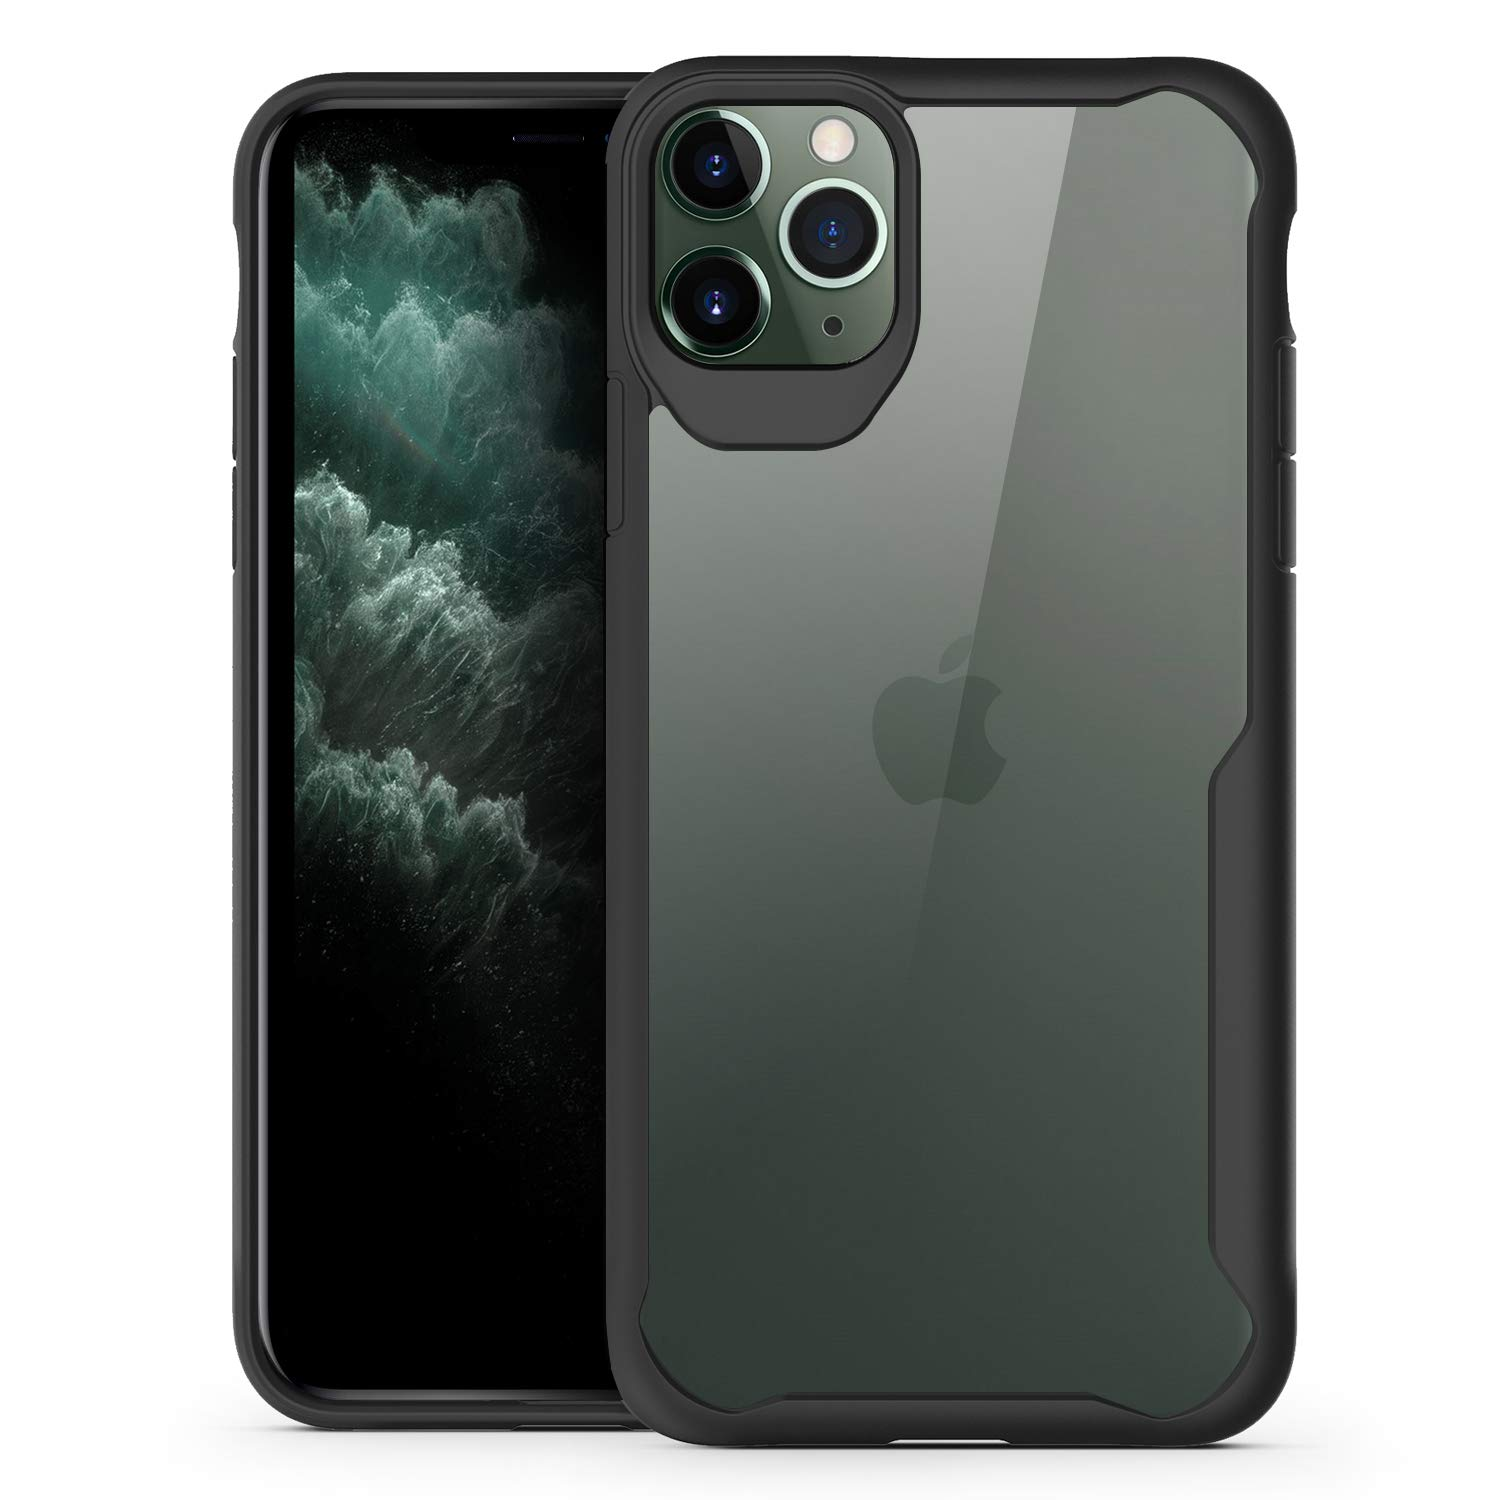 Olixar for iPhone 11 Pro Bumper Case - Hard Tough Slim Cover - Clear Back - Shock Protection - NovaShield - Wireless Charging Compatible - Black by Olixar